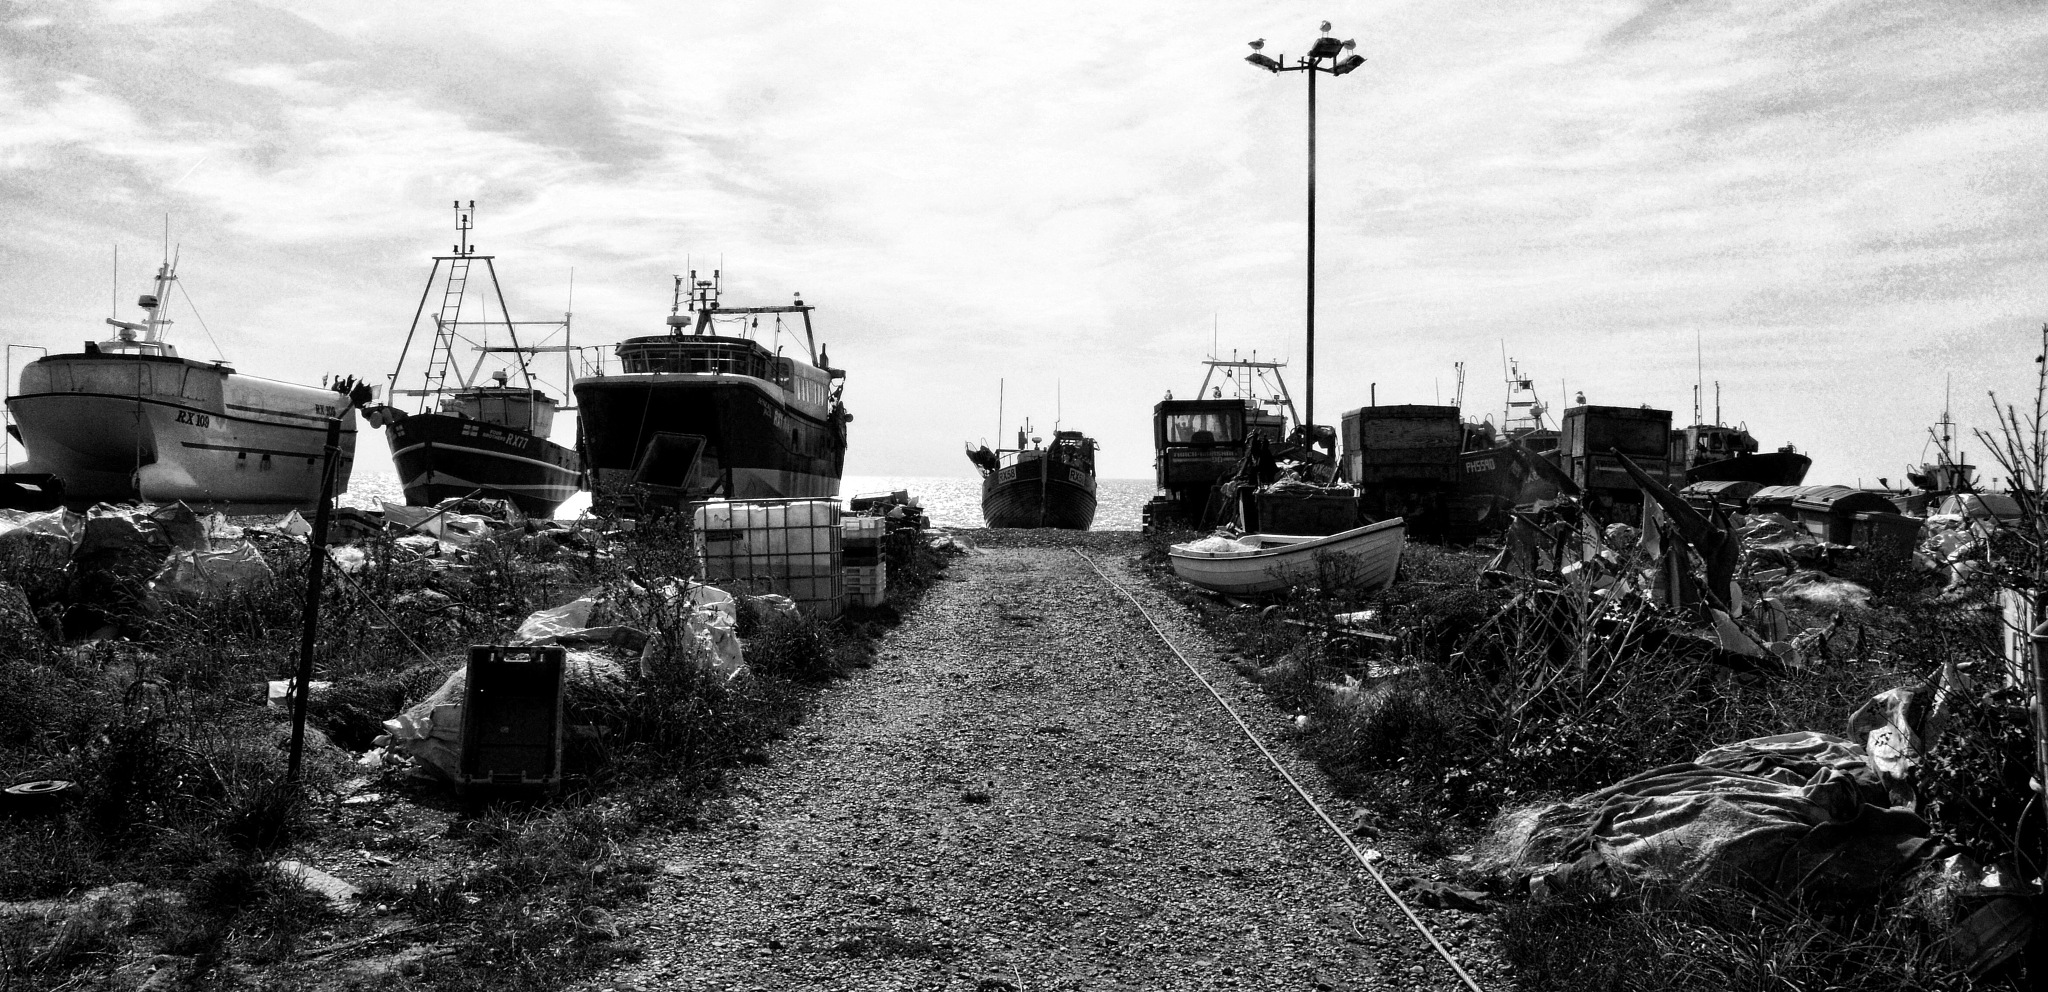 Pathway to Beached Boats by Tony Gaitskell